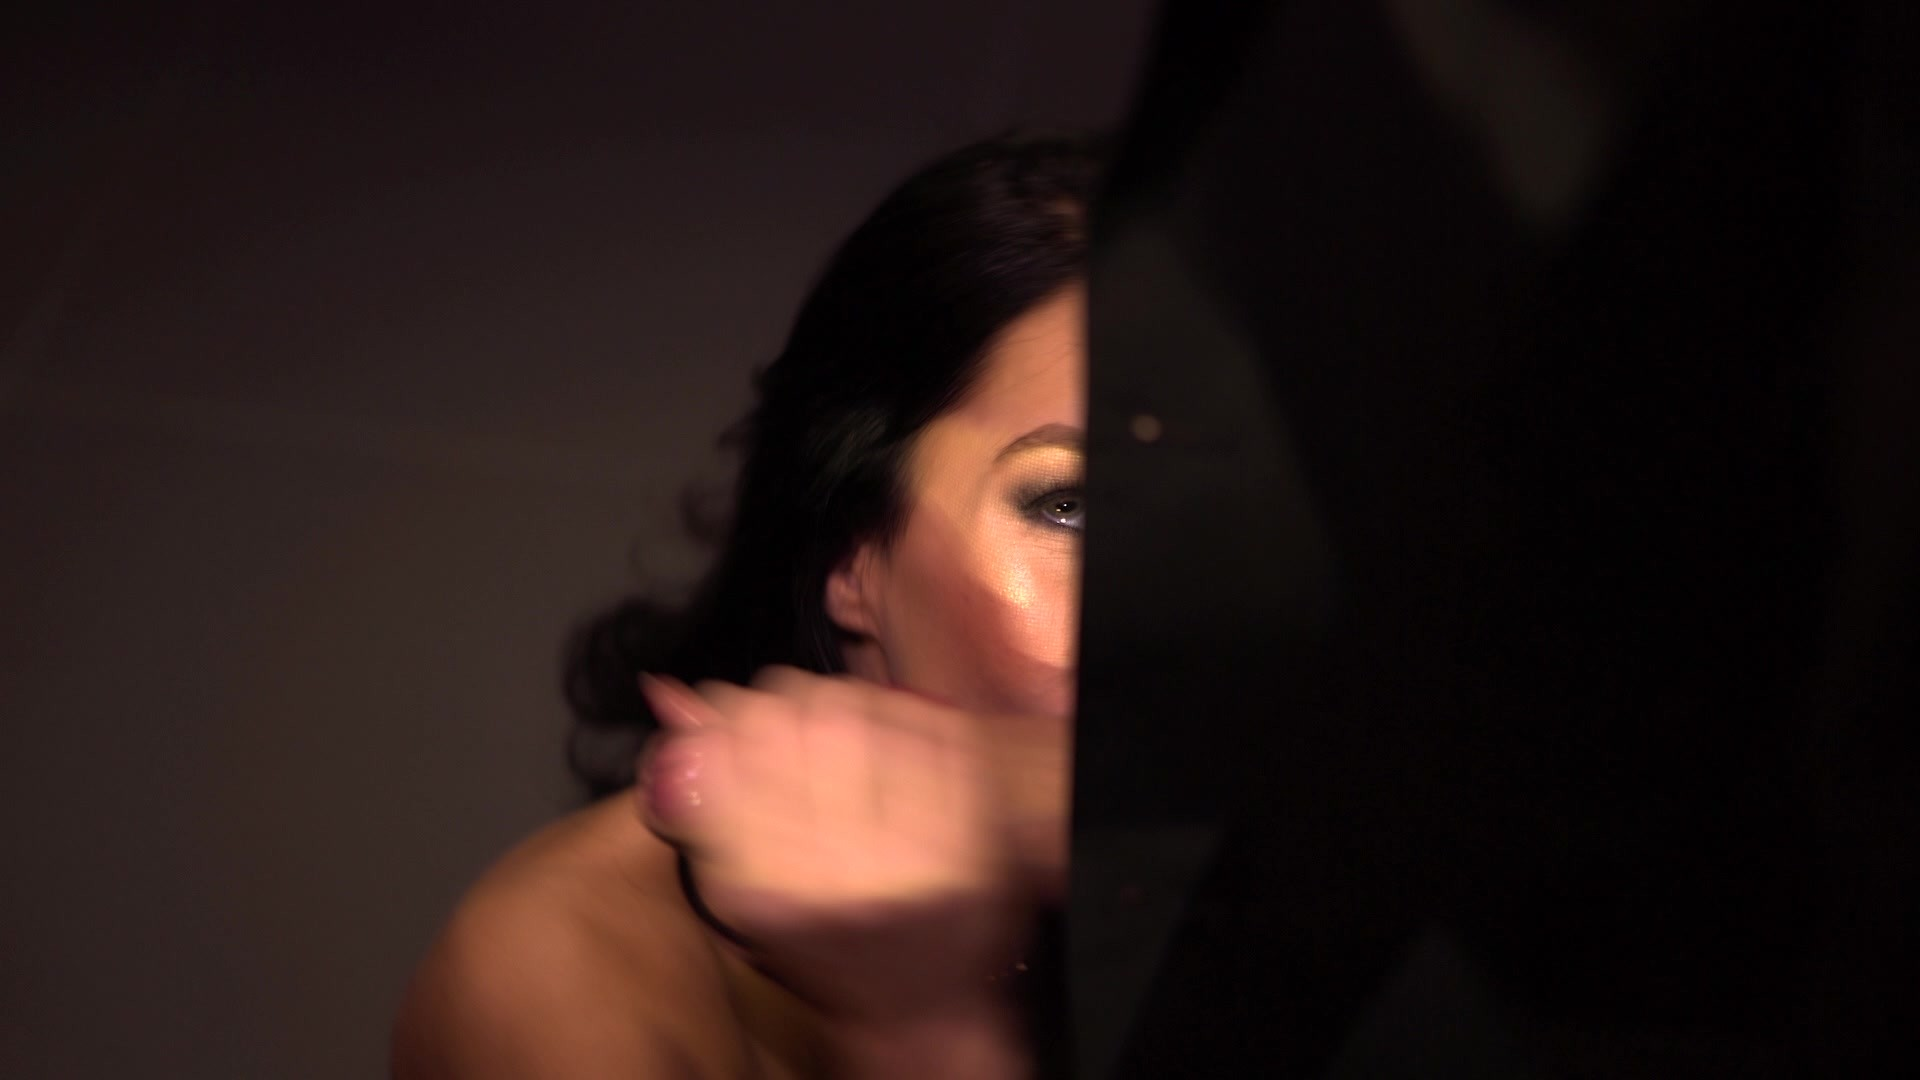 Scene with Megan Rain - image 12 out of 20